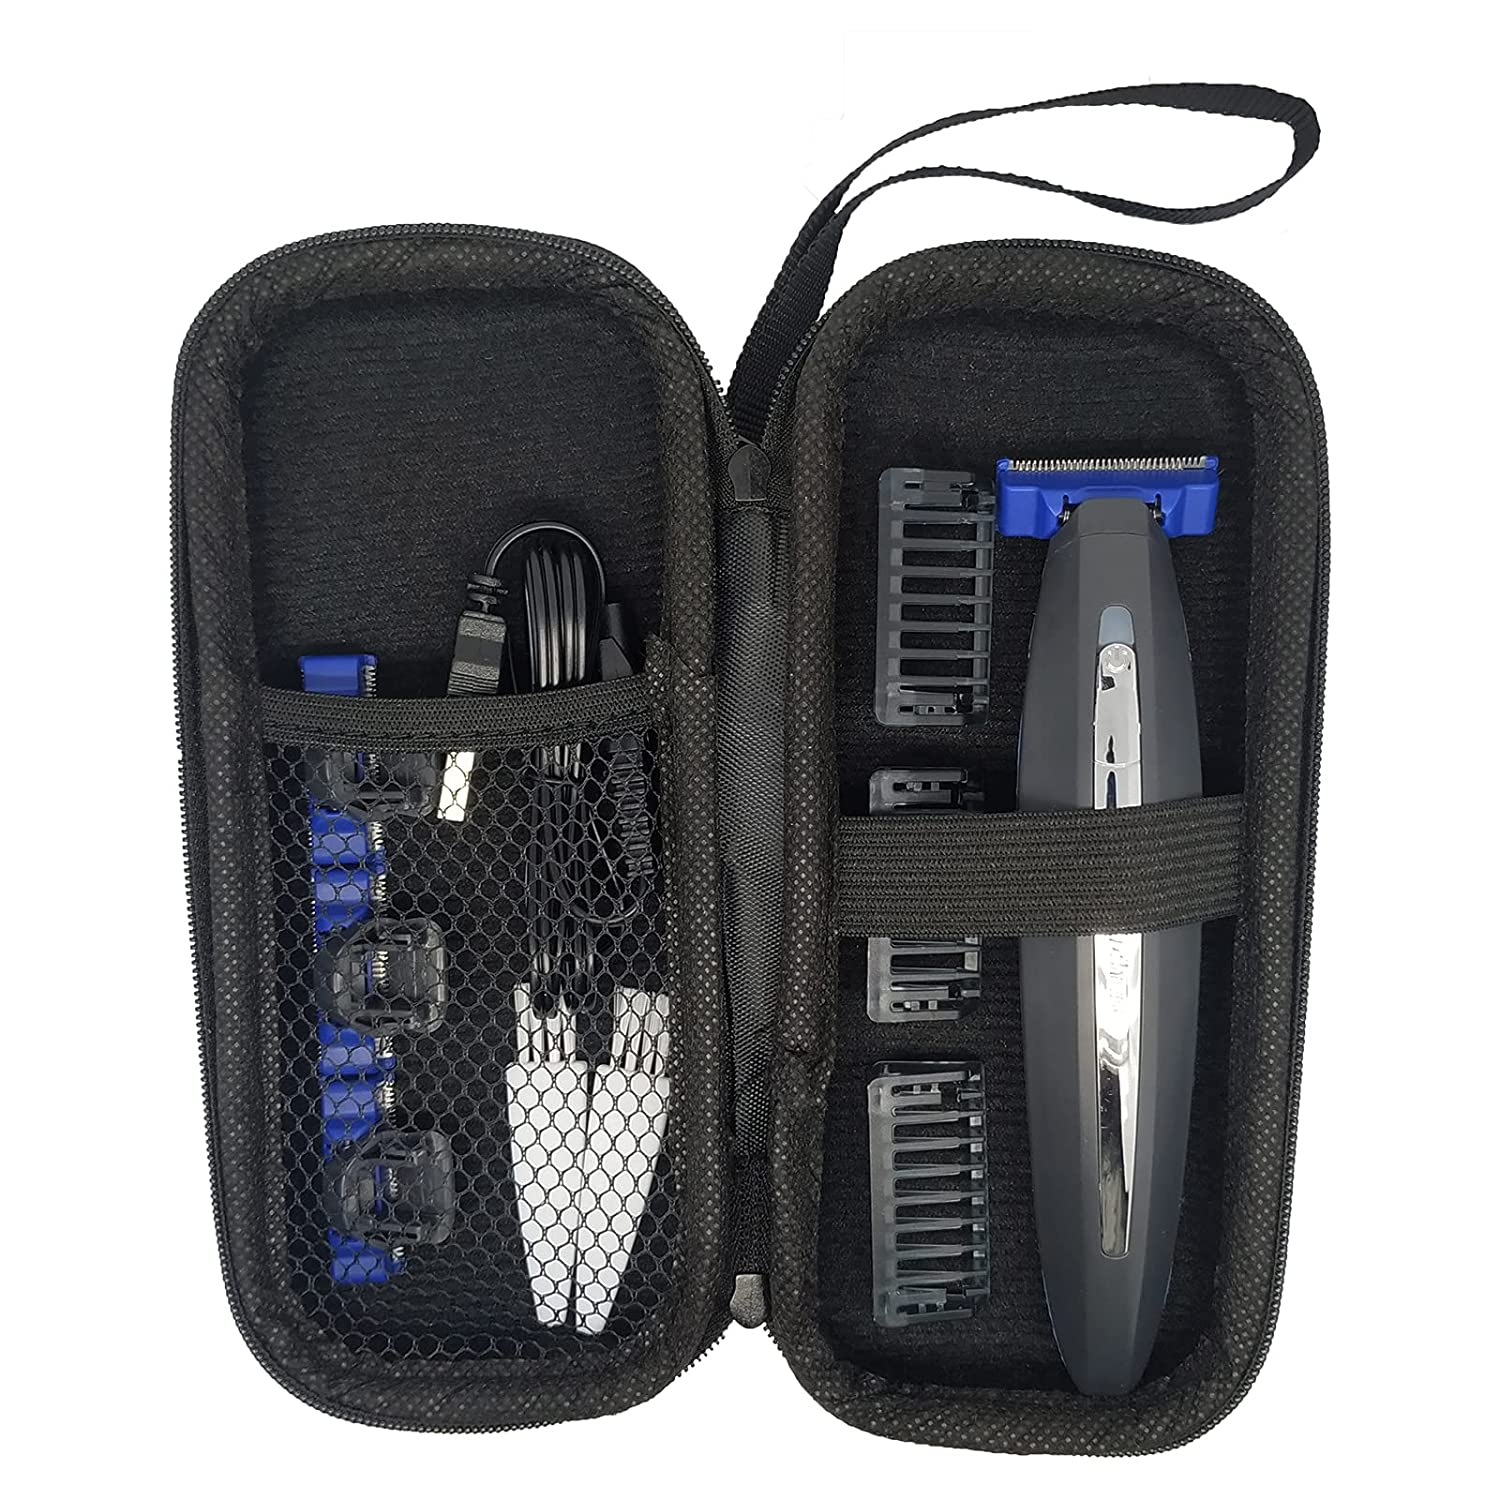 High material Shaver EVA Case for Micro Touch Universal And Max 82% OFF Sha SOLO One blade